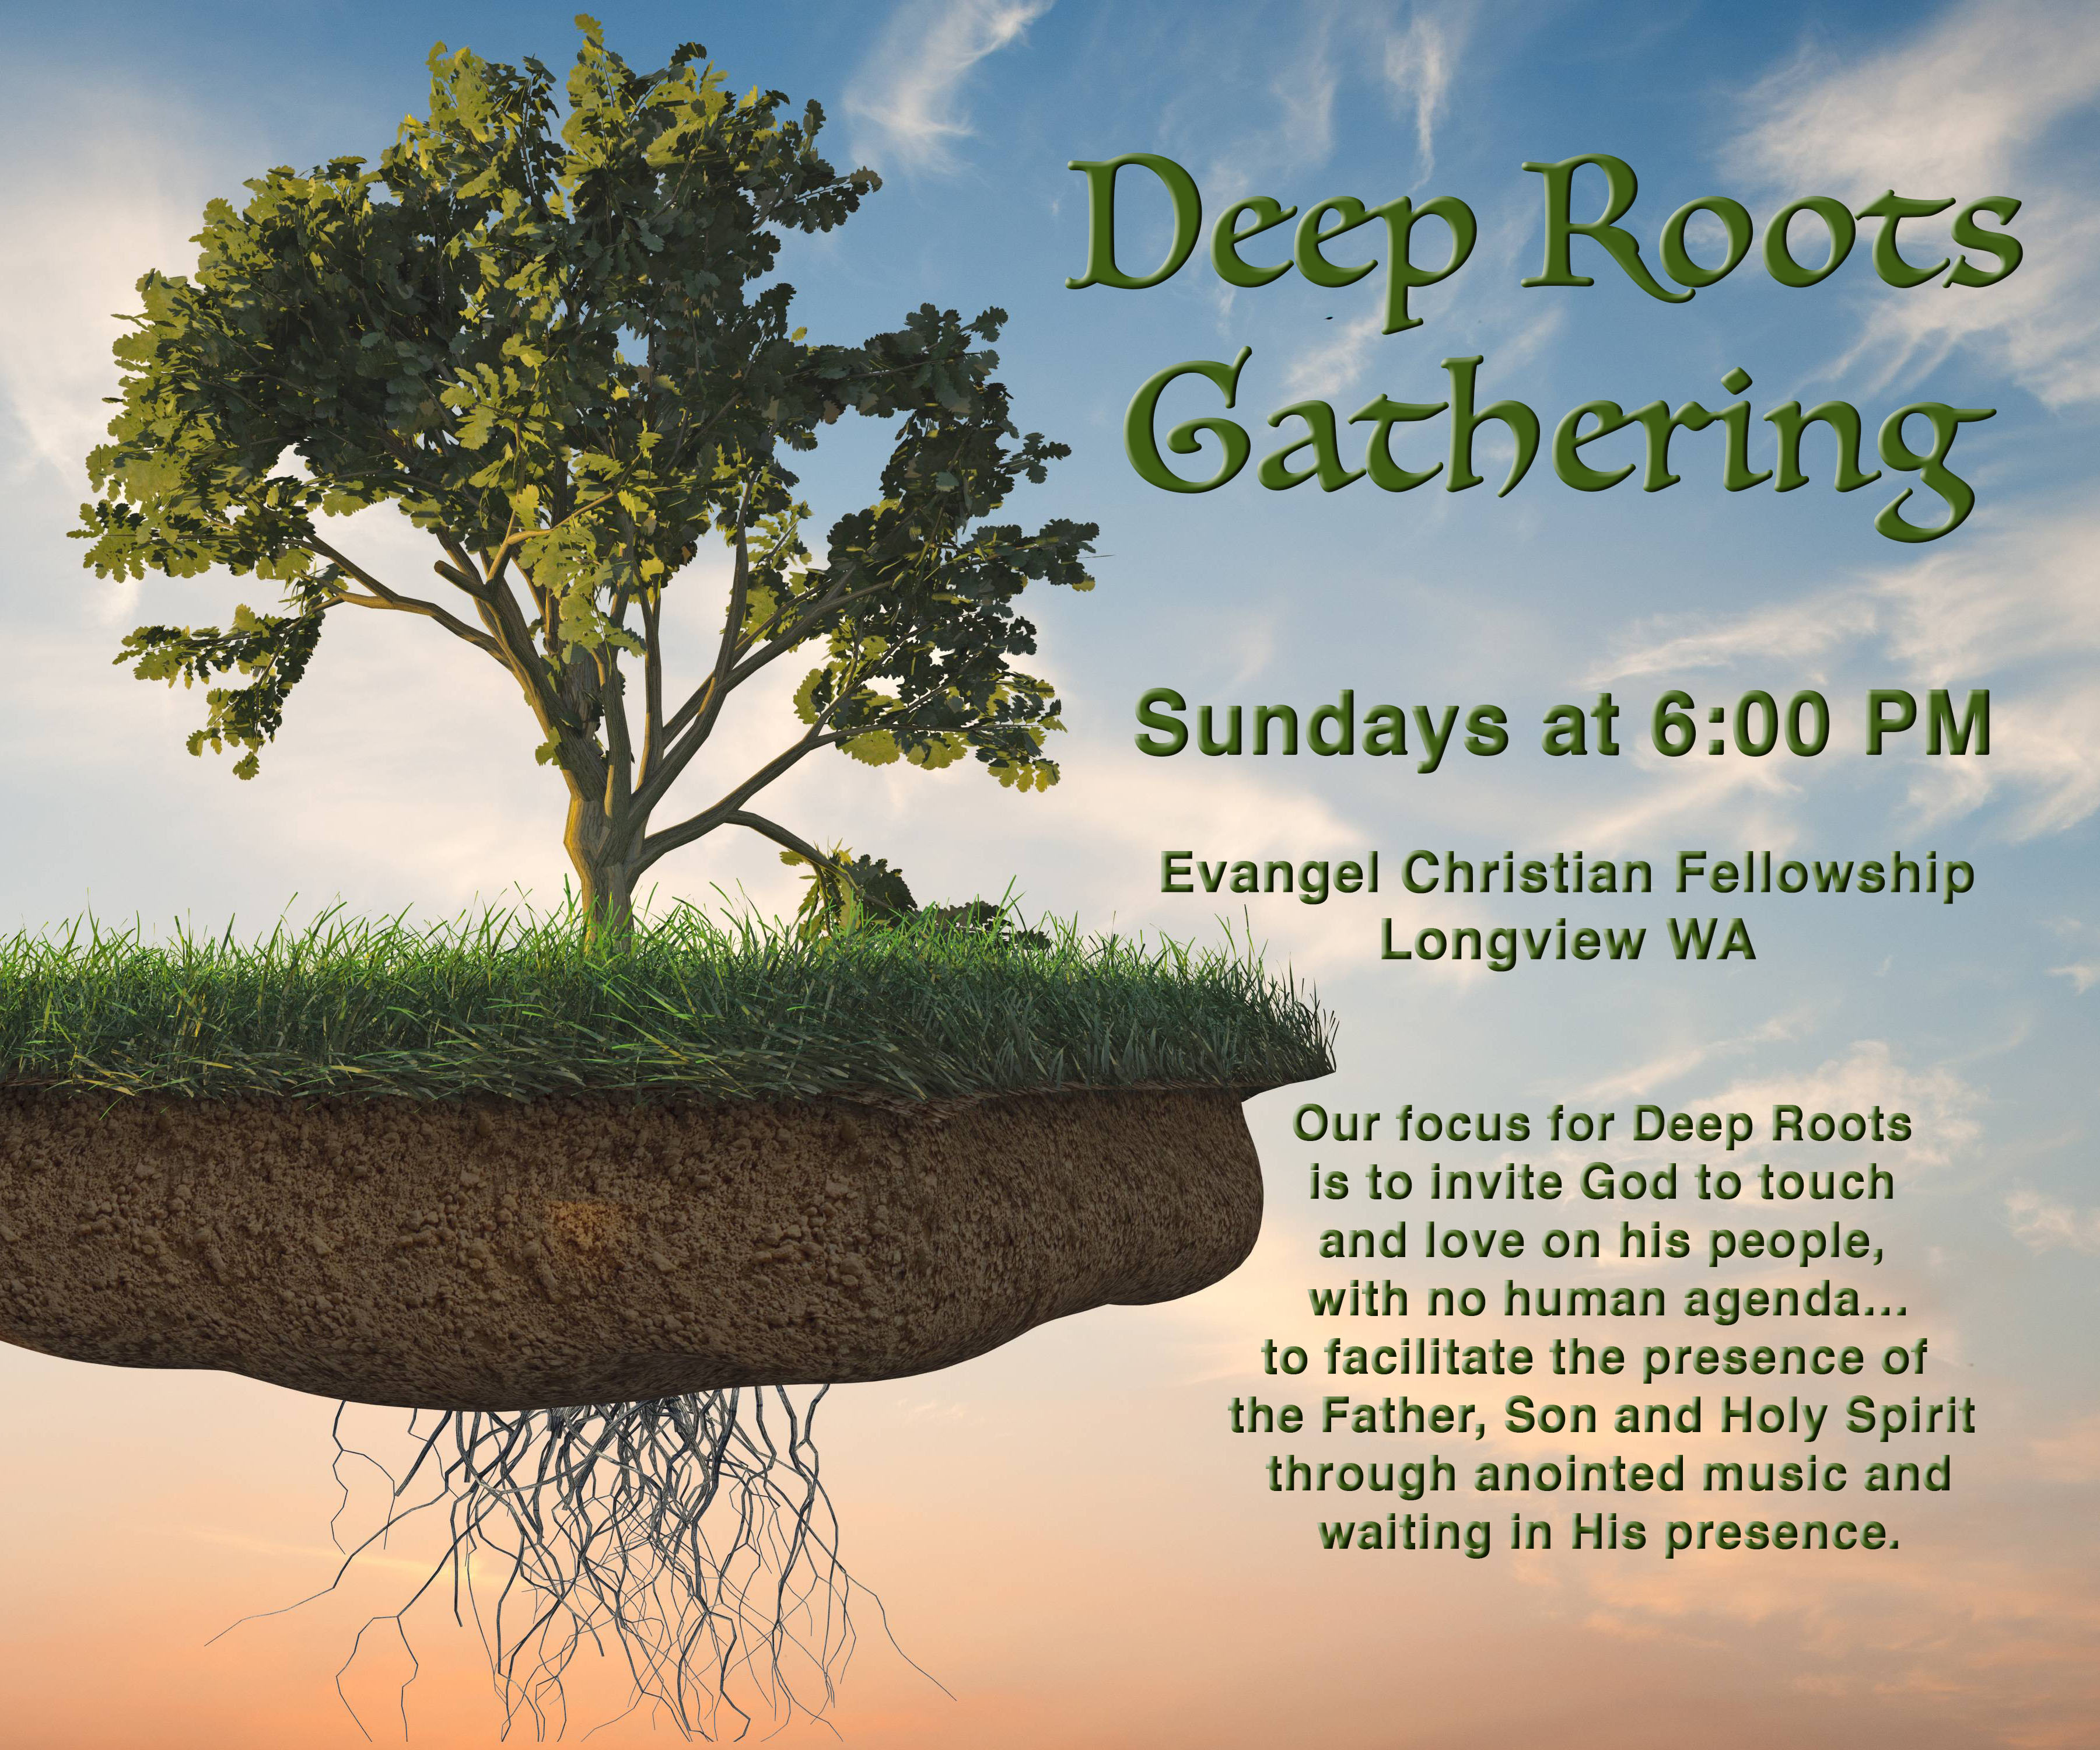 Deep Roots Gathering